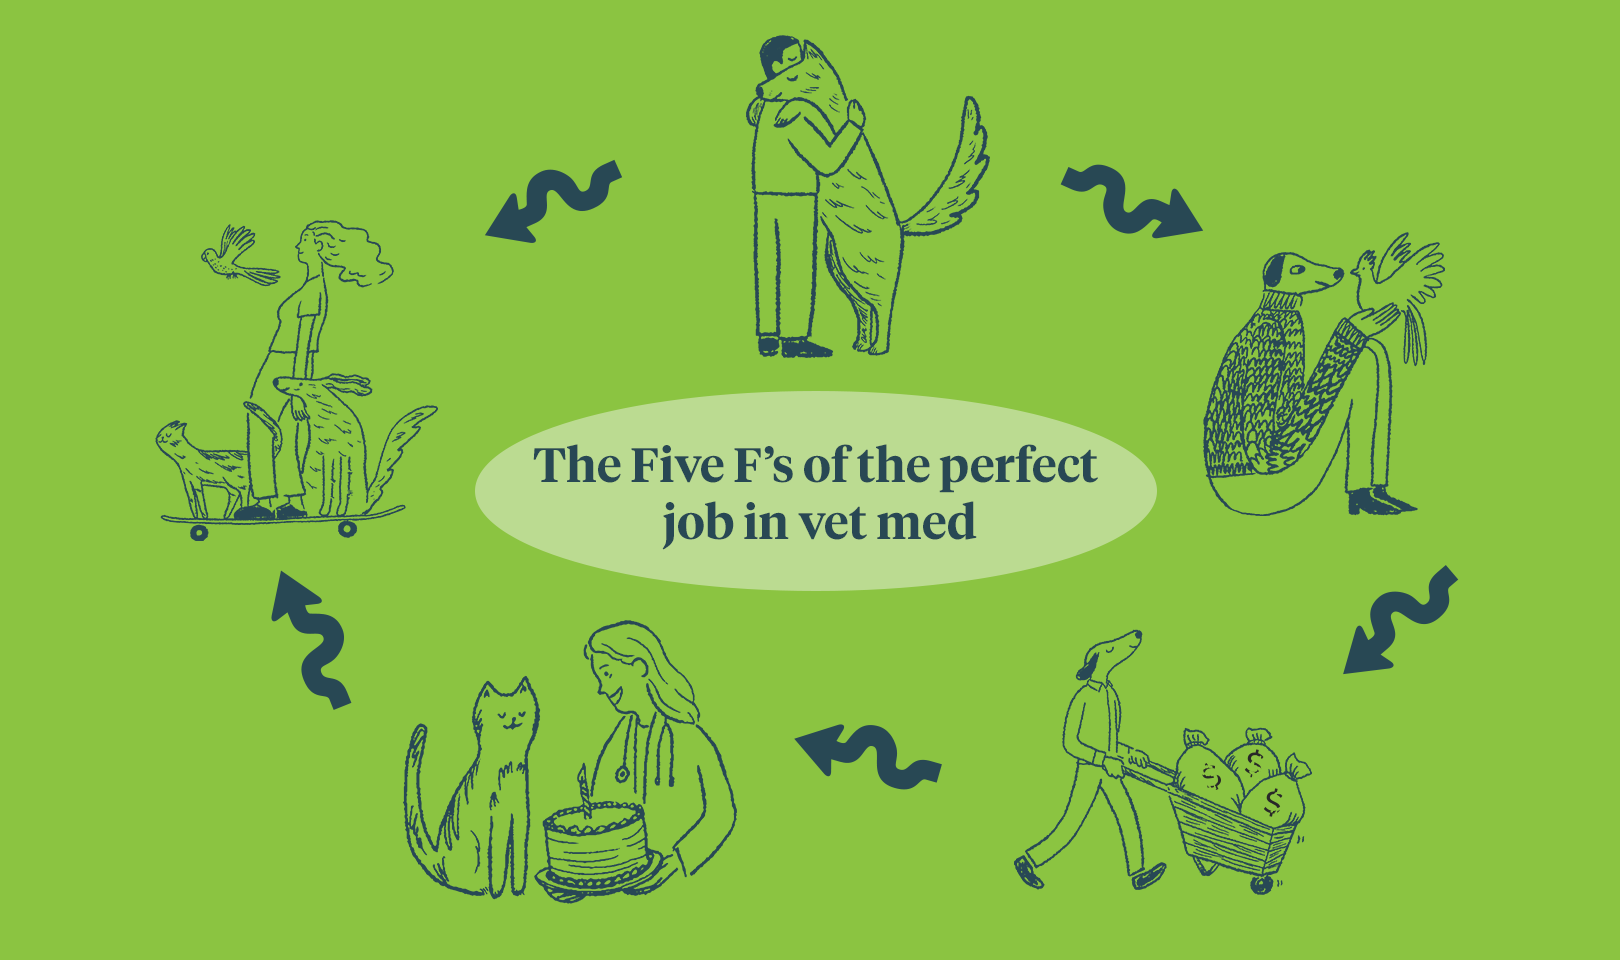 The Five F's of the perfect job in vet med